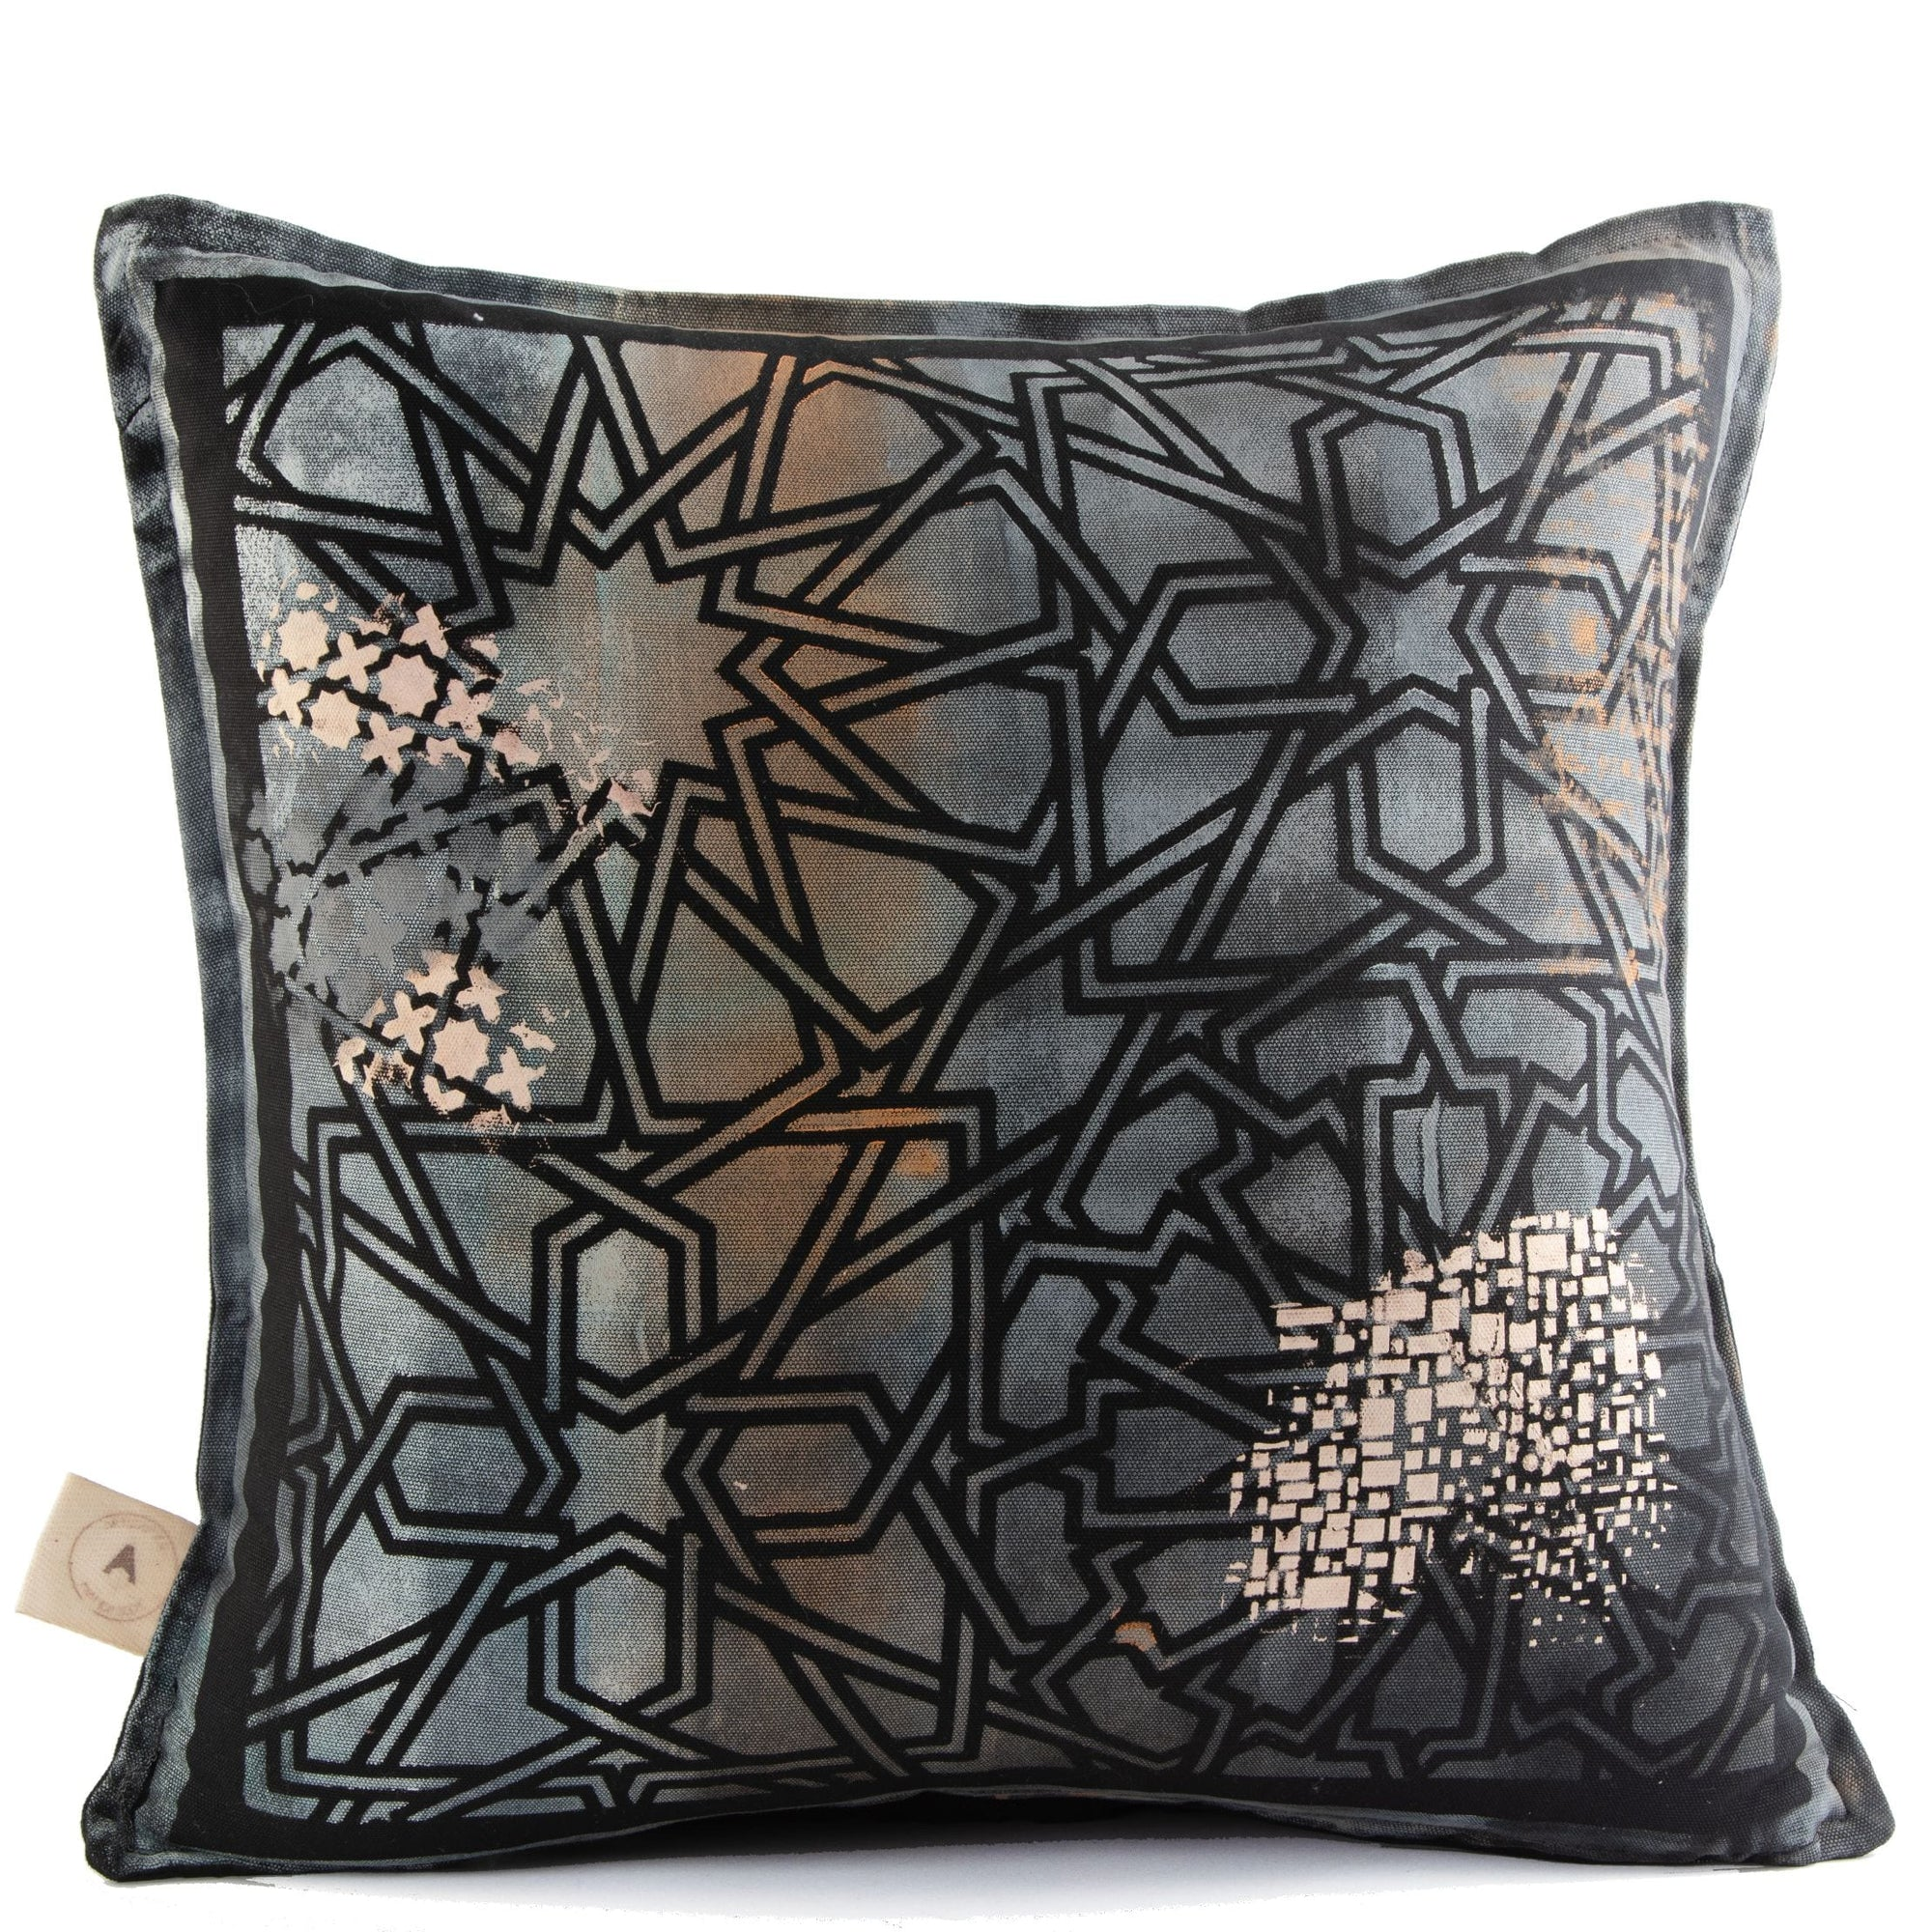 Artizainer's Pillowcases